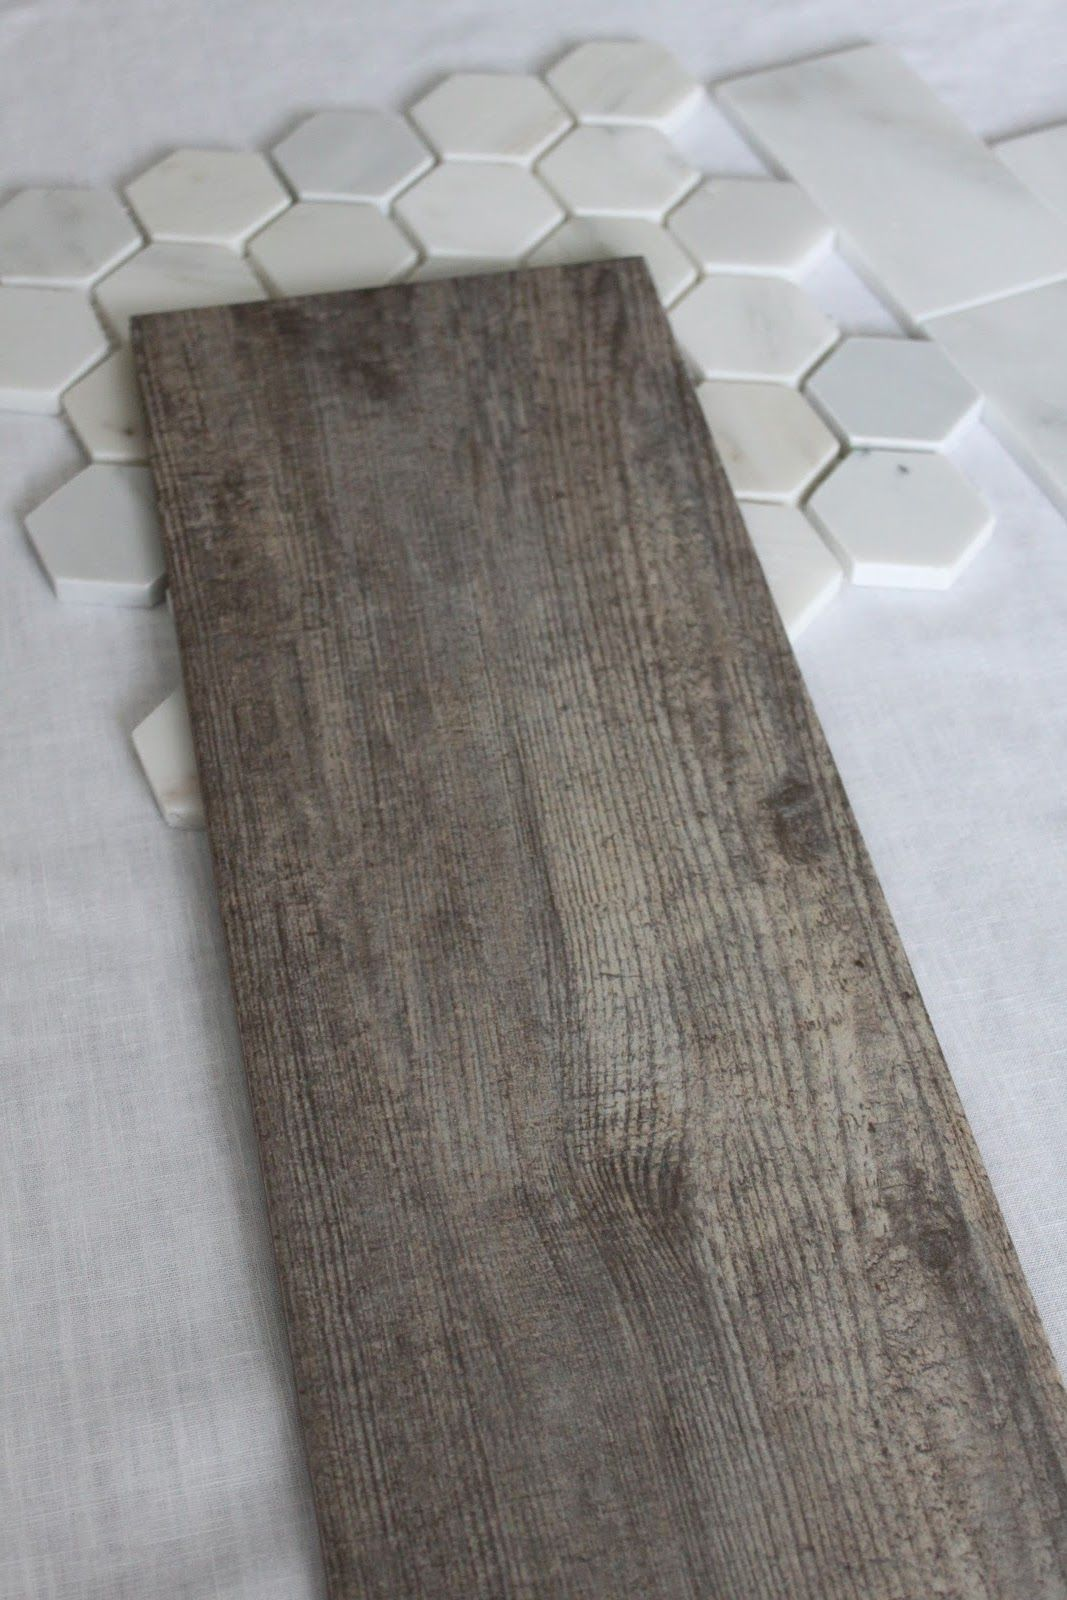 Bayur borneo tile ceramic 7 x20 size 529 per sq feet design happenstance home circle of moms top 25 and our bathroom tile choices the bathroom floor will wear this tile it looks like a weathered wood floor dailygadgetfo Gallery